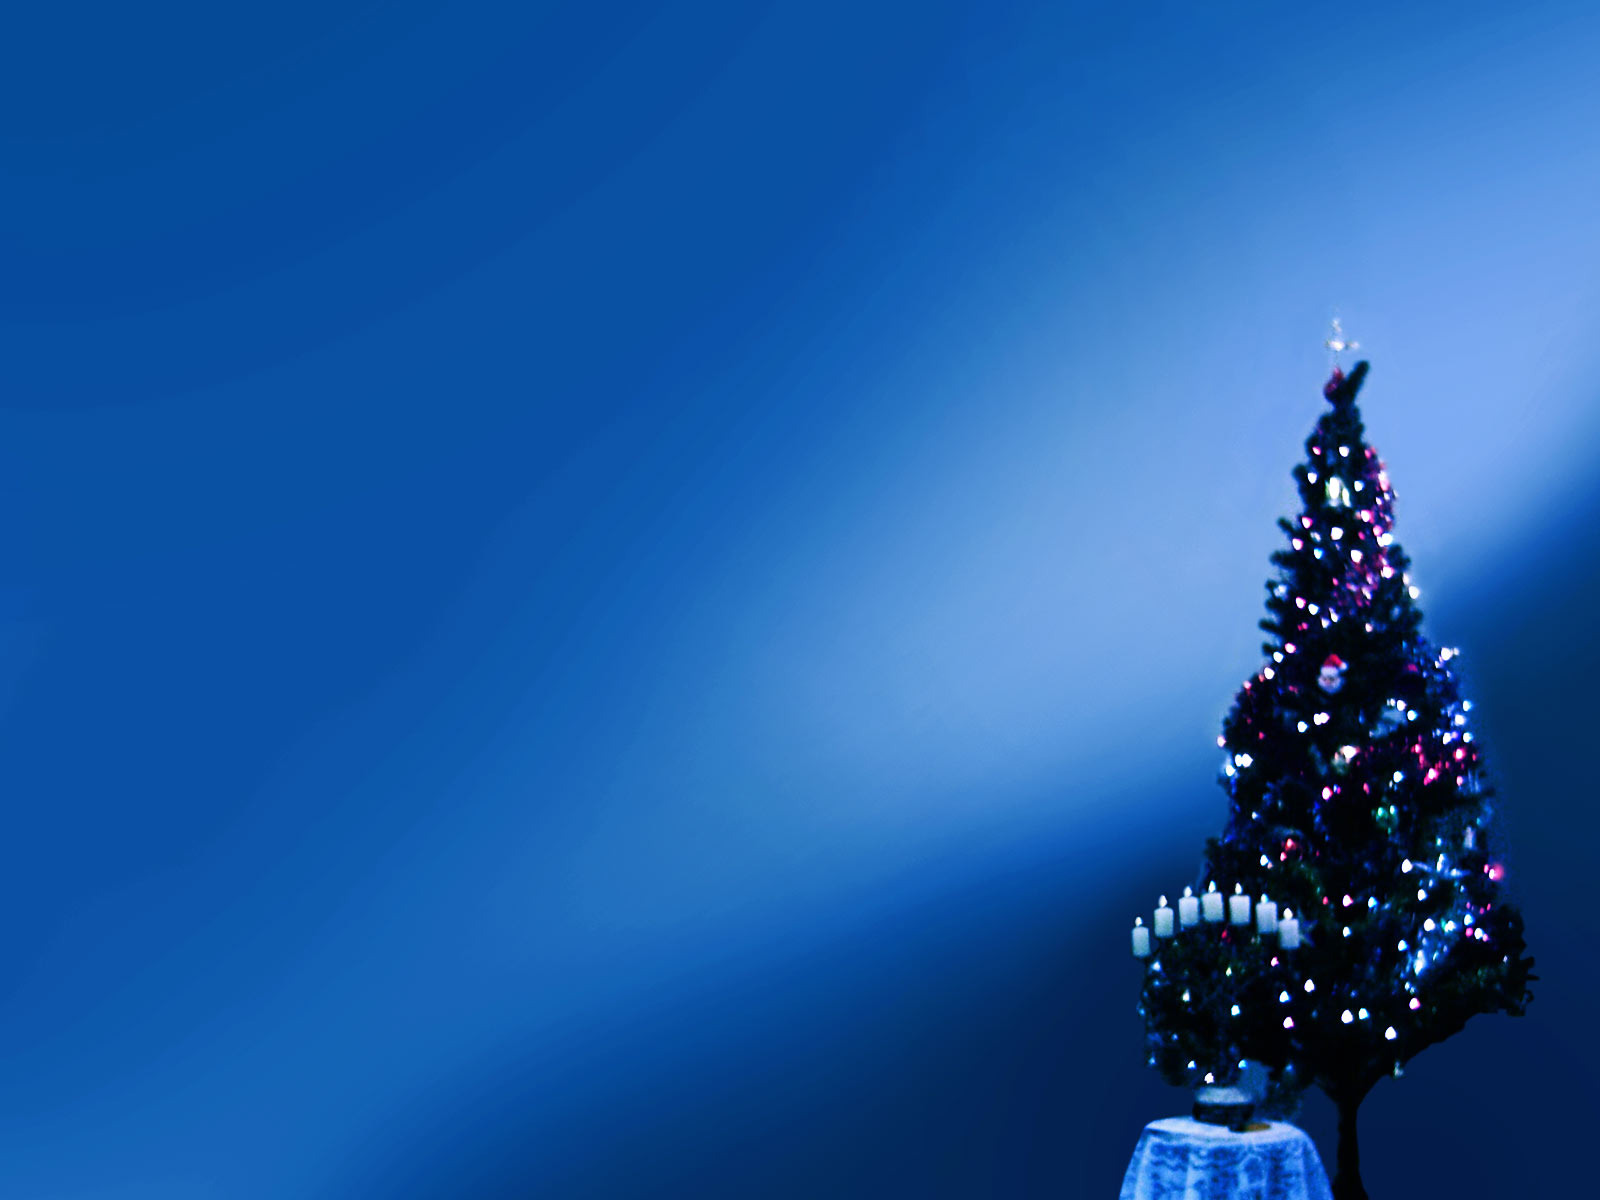 download night christmas theme for powerpoint background - Christmas Themes Free